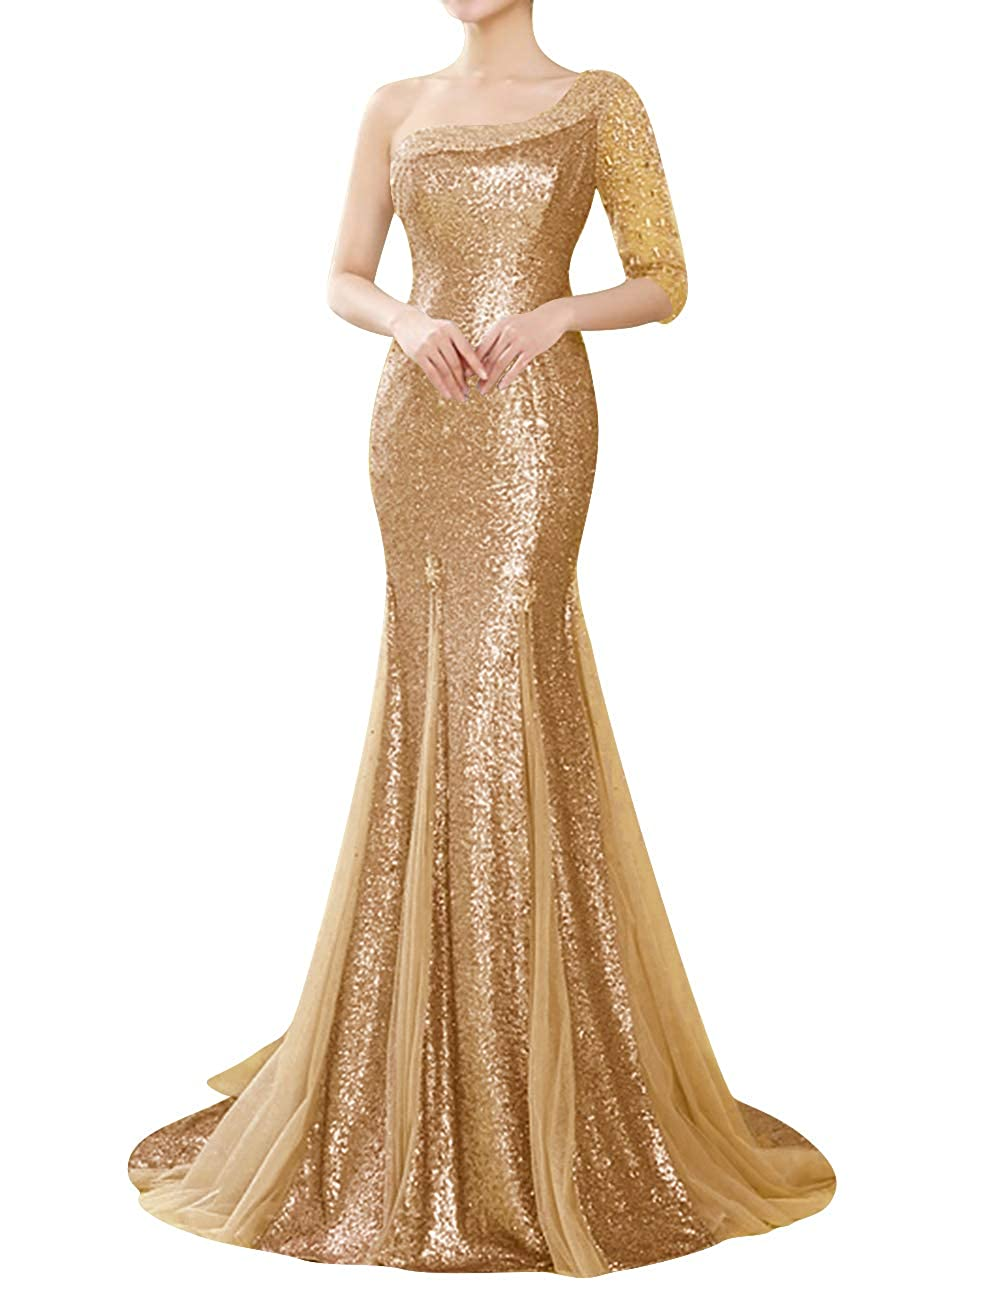 Champagne Uther Evening Dress Mermaid One Shoulder Sequins Beading Long Party Prom Gown